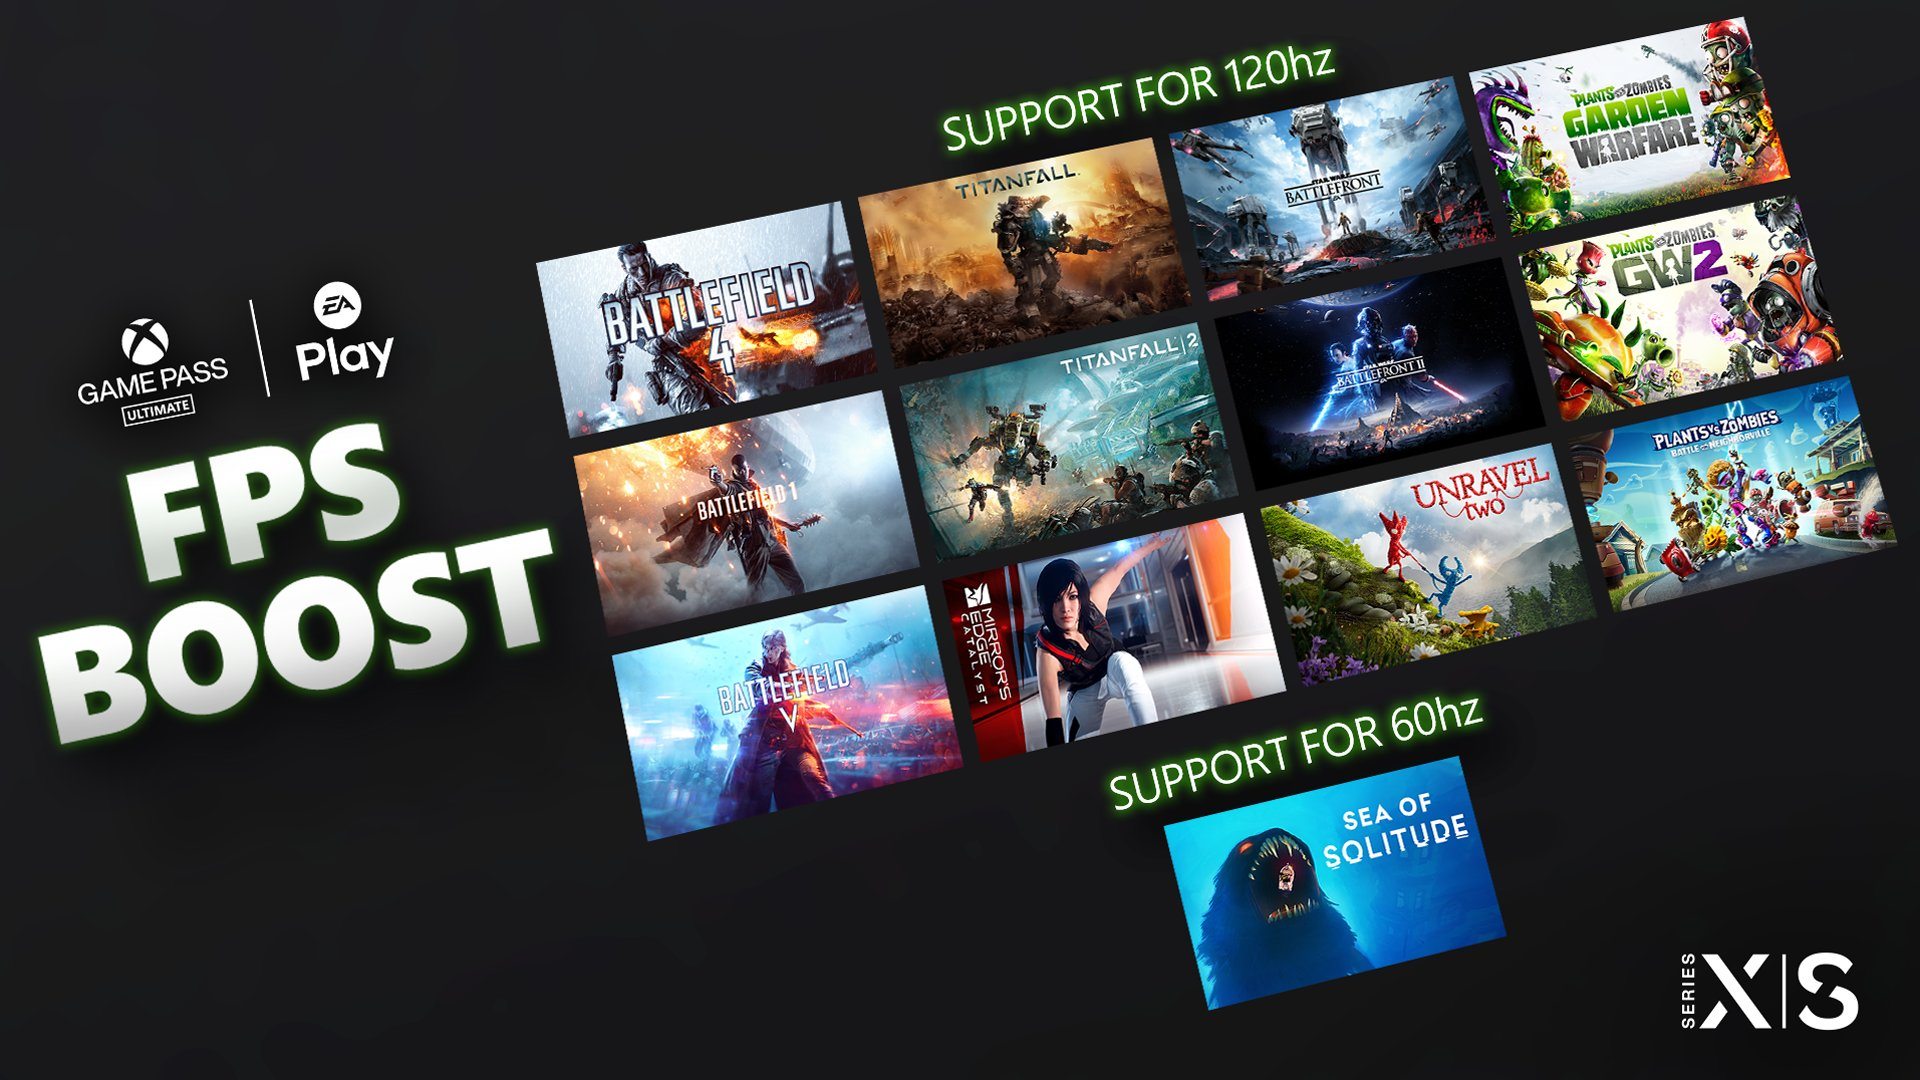 Xbox Series X+S FPS boost